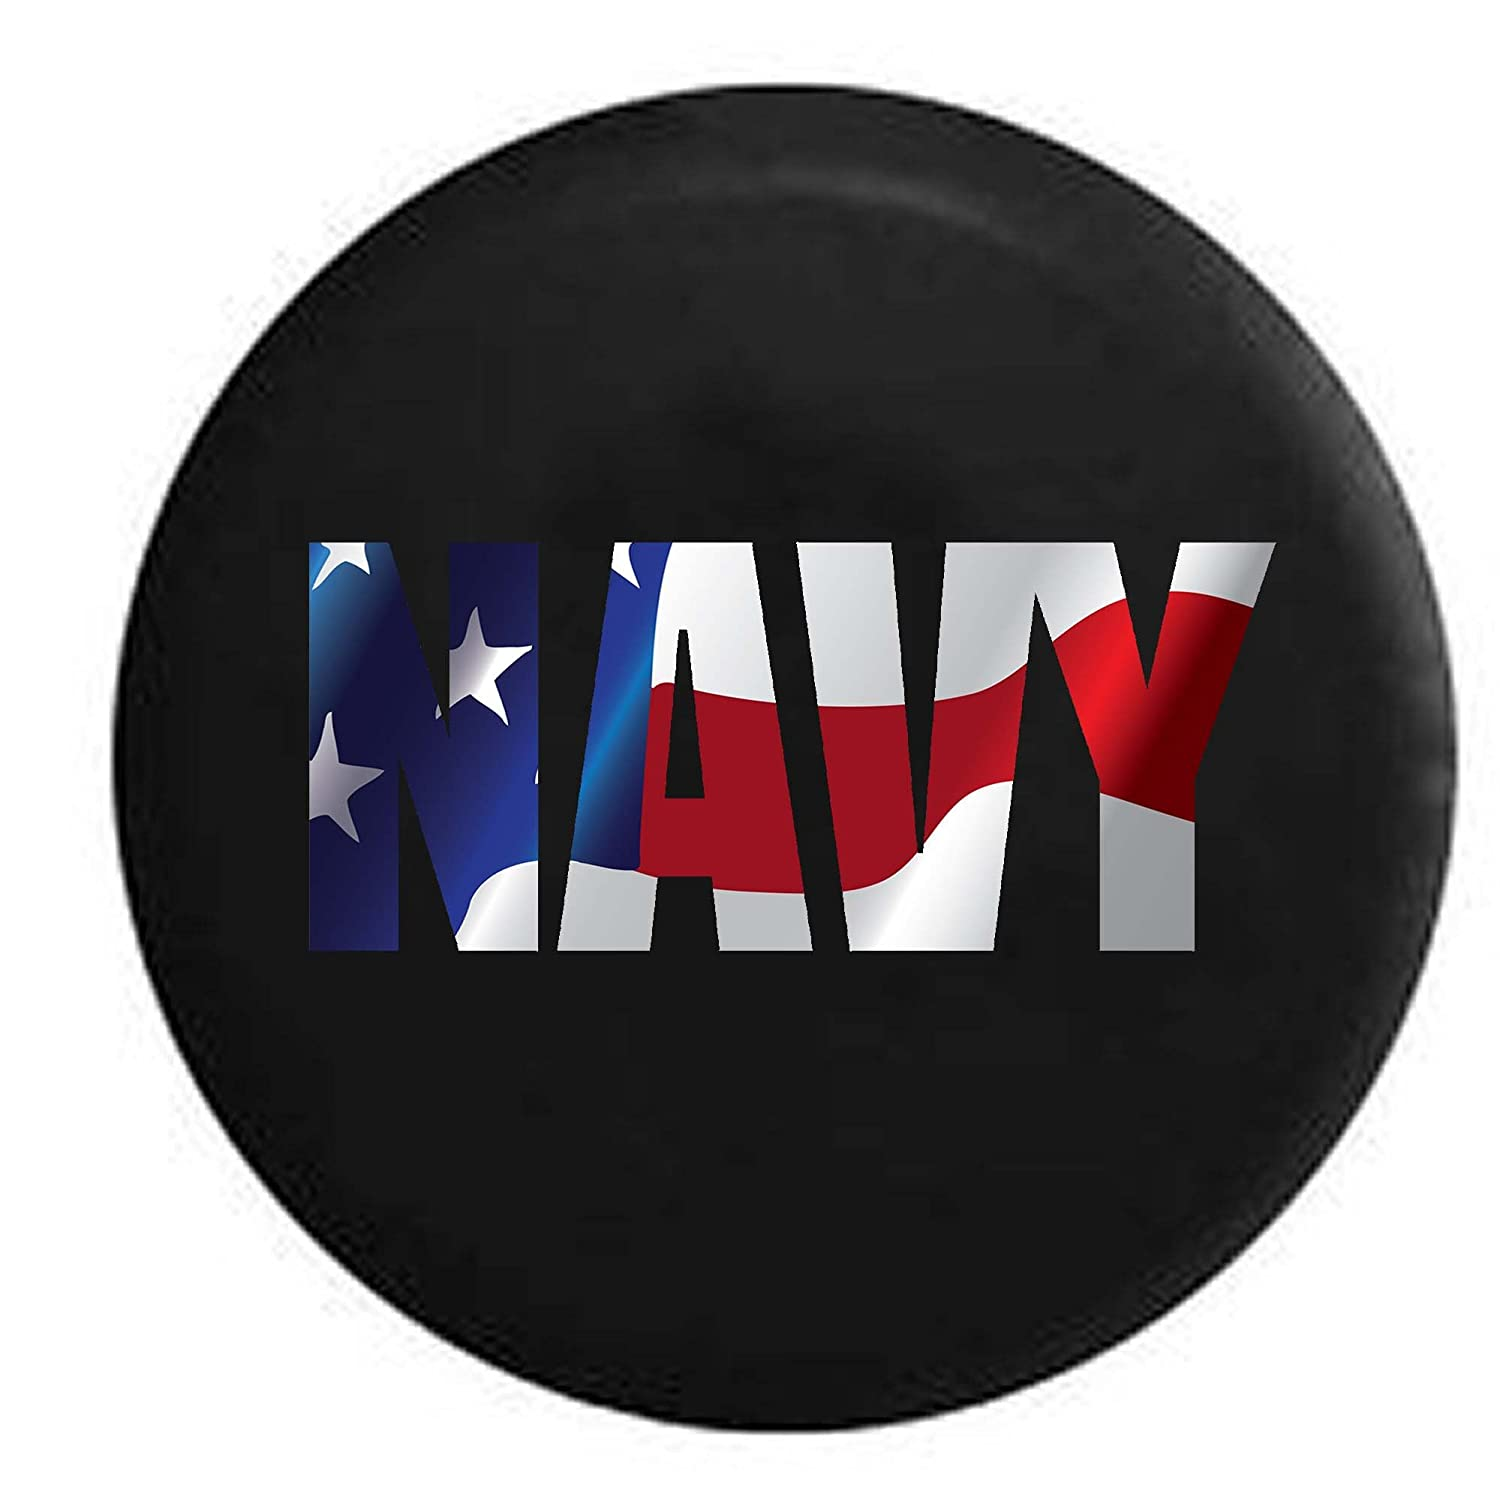 Pike Flag US Navy Military Trailer RV Spare Tire Cover OEM Vinyl Black 32 in